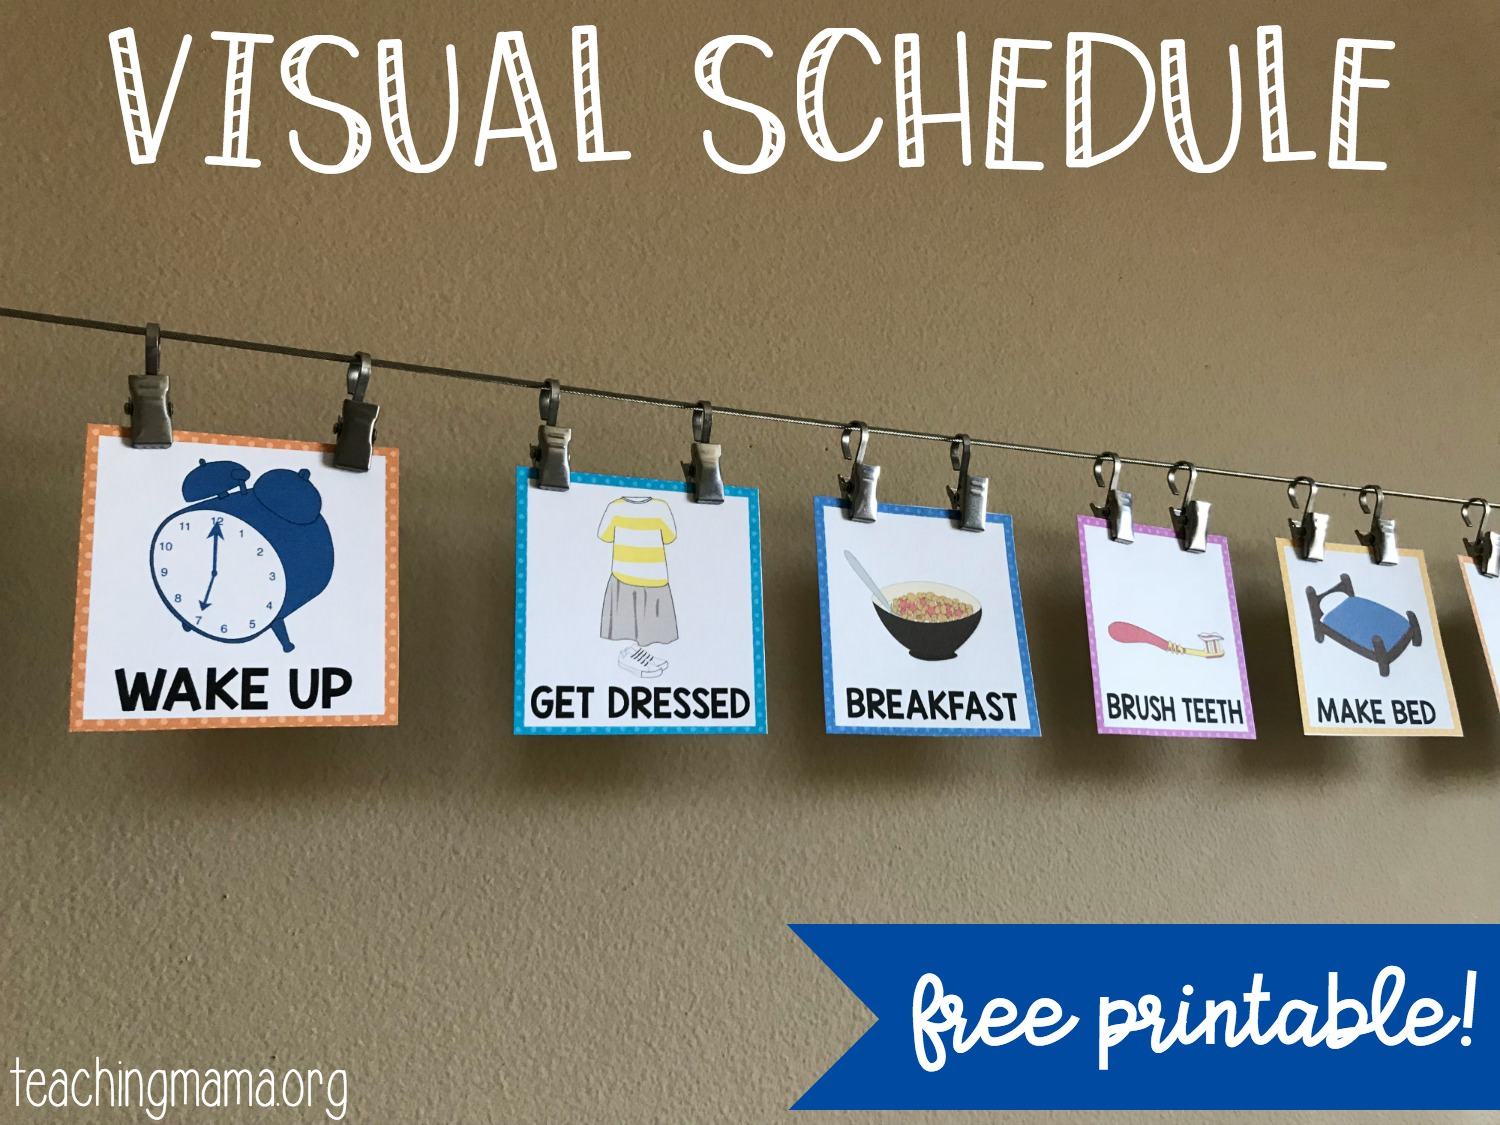 image about Free Printable Visual Schedule for Preschool named Visible Routine for Infants